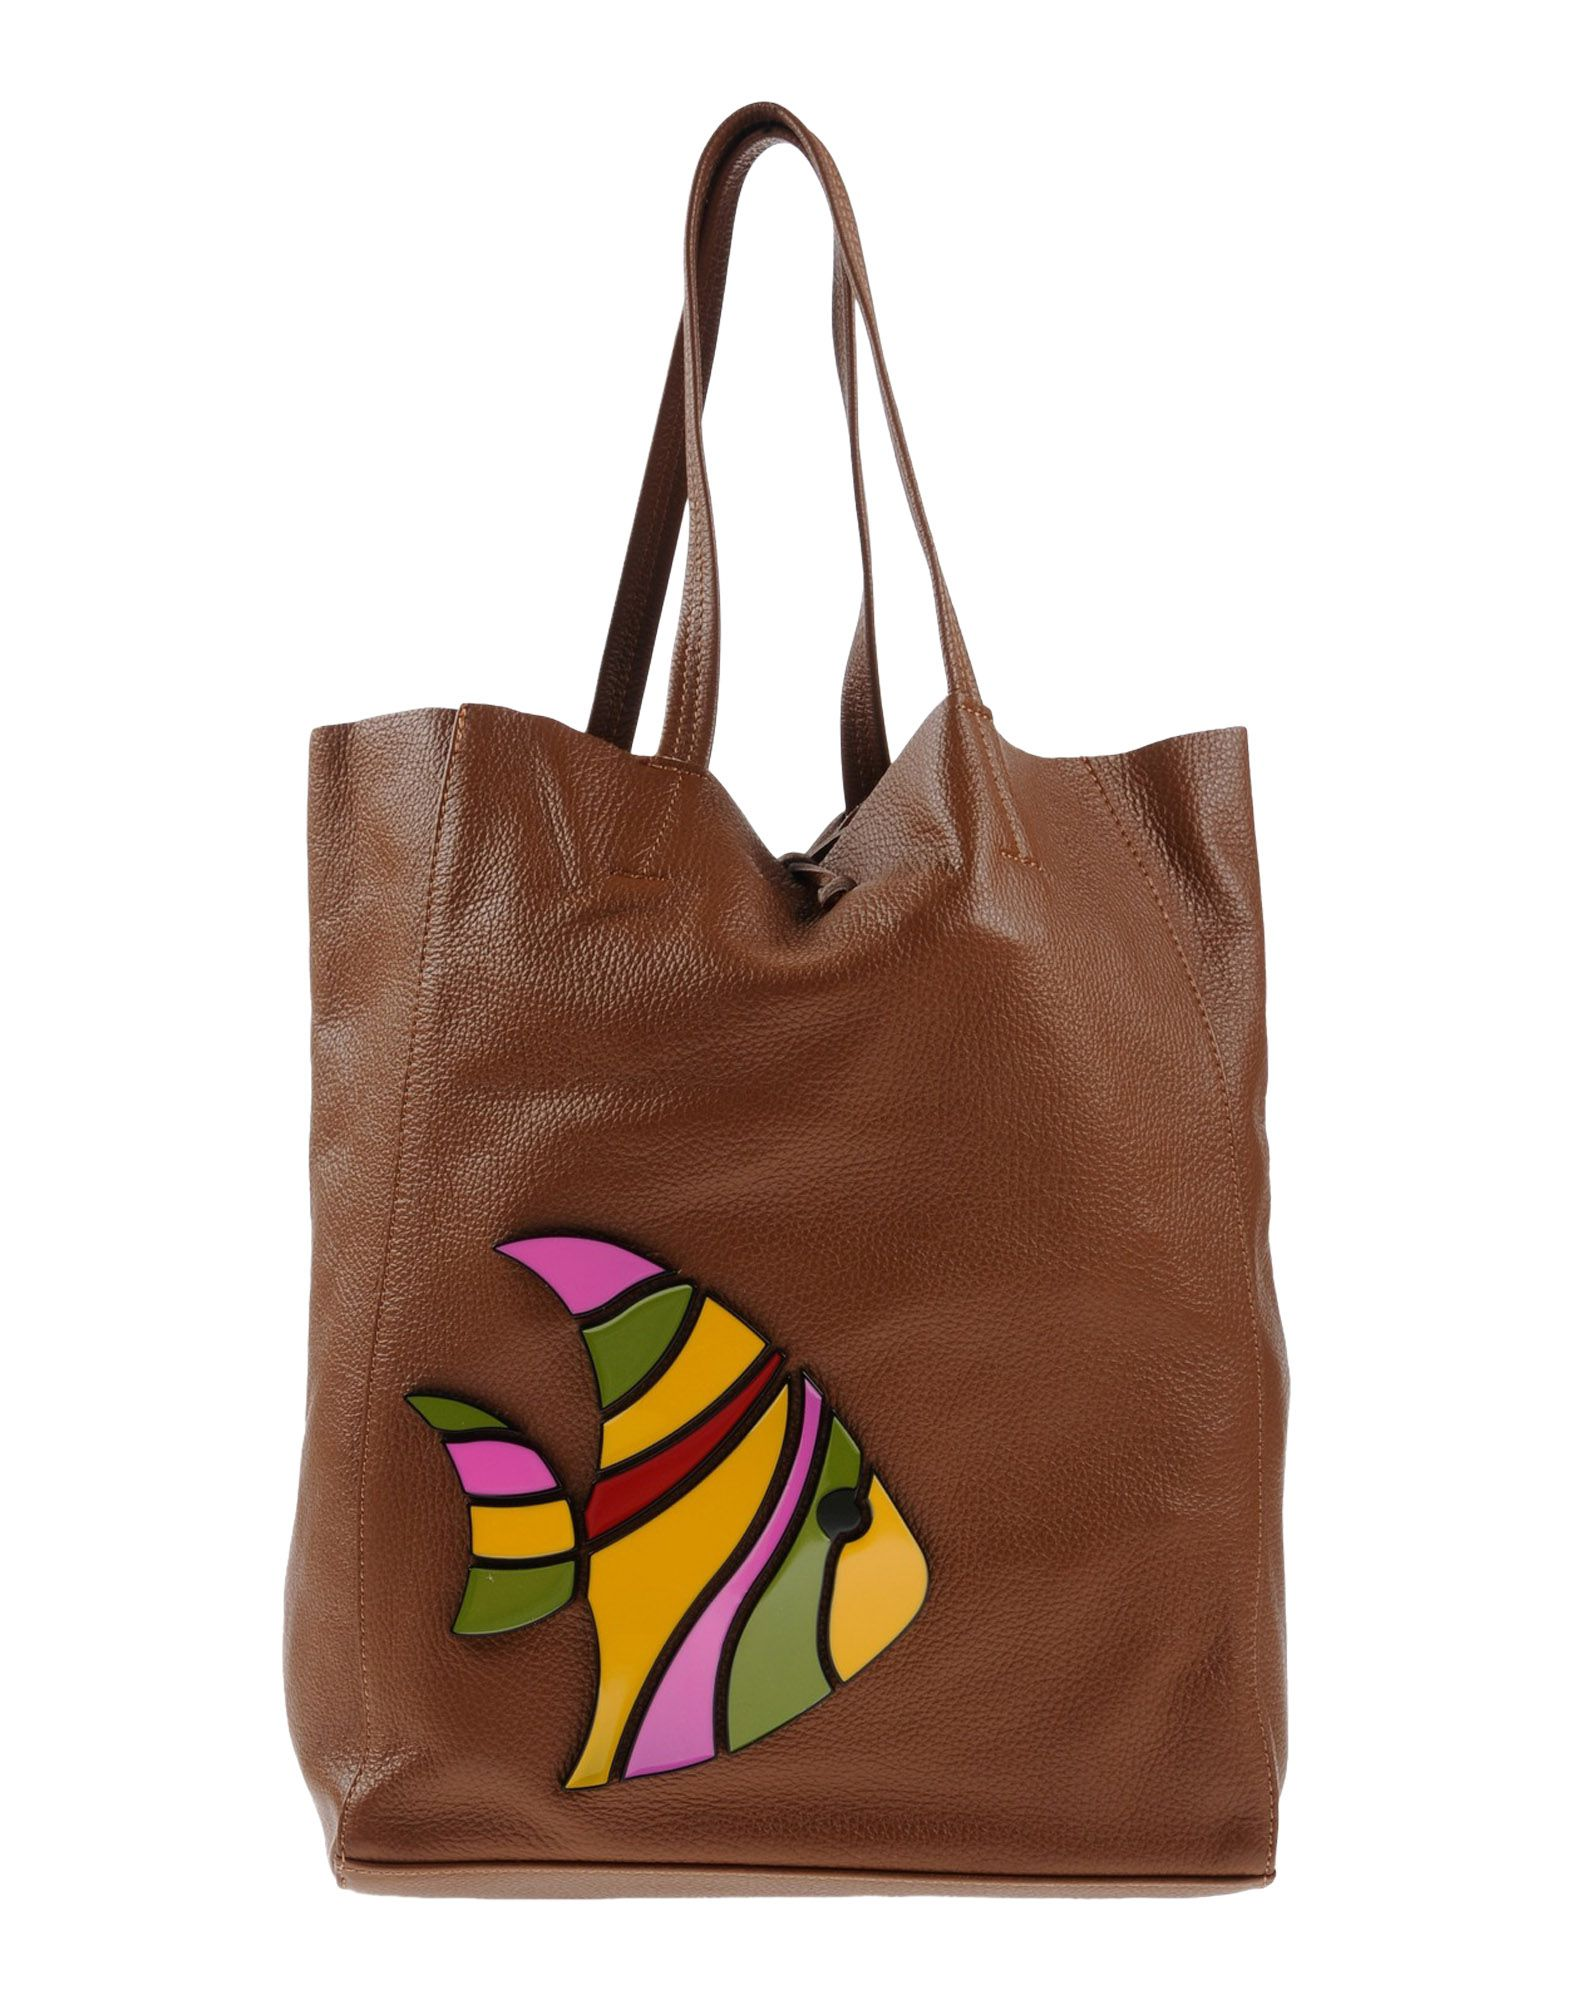 ALMALA Handbag in Brown